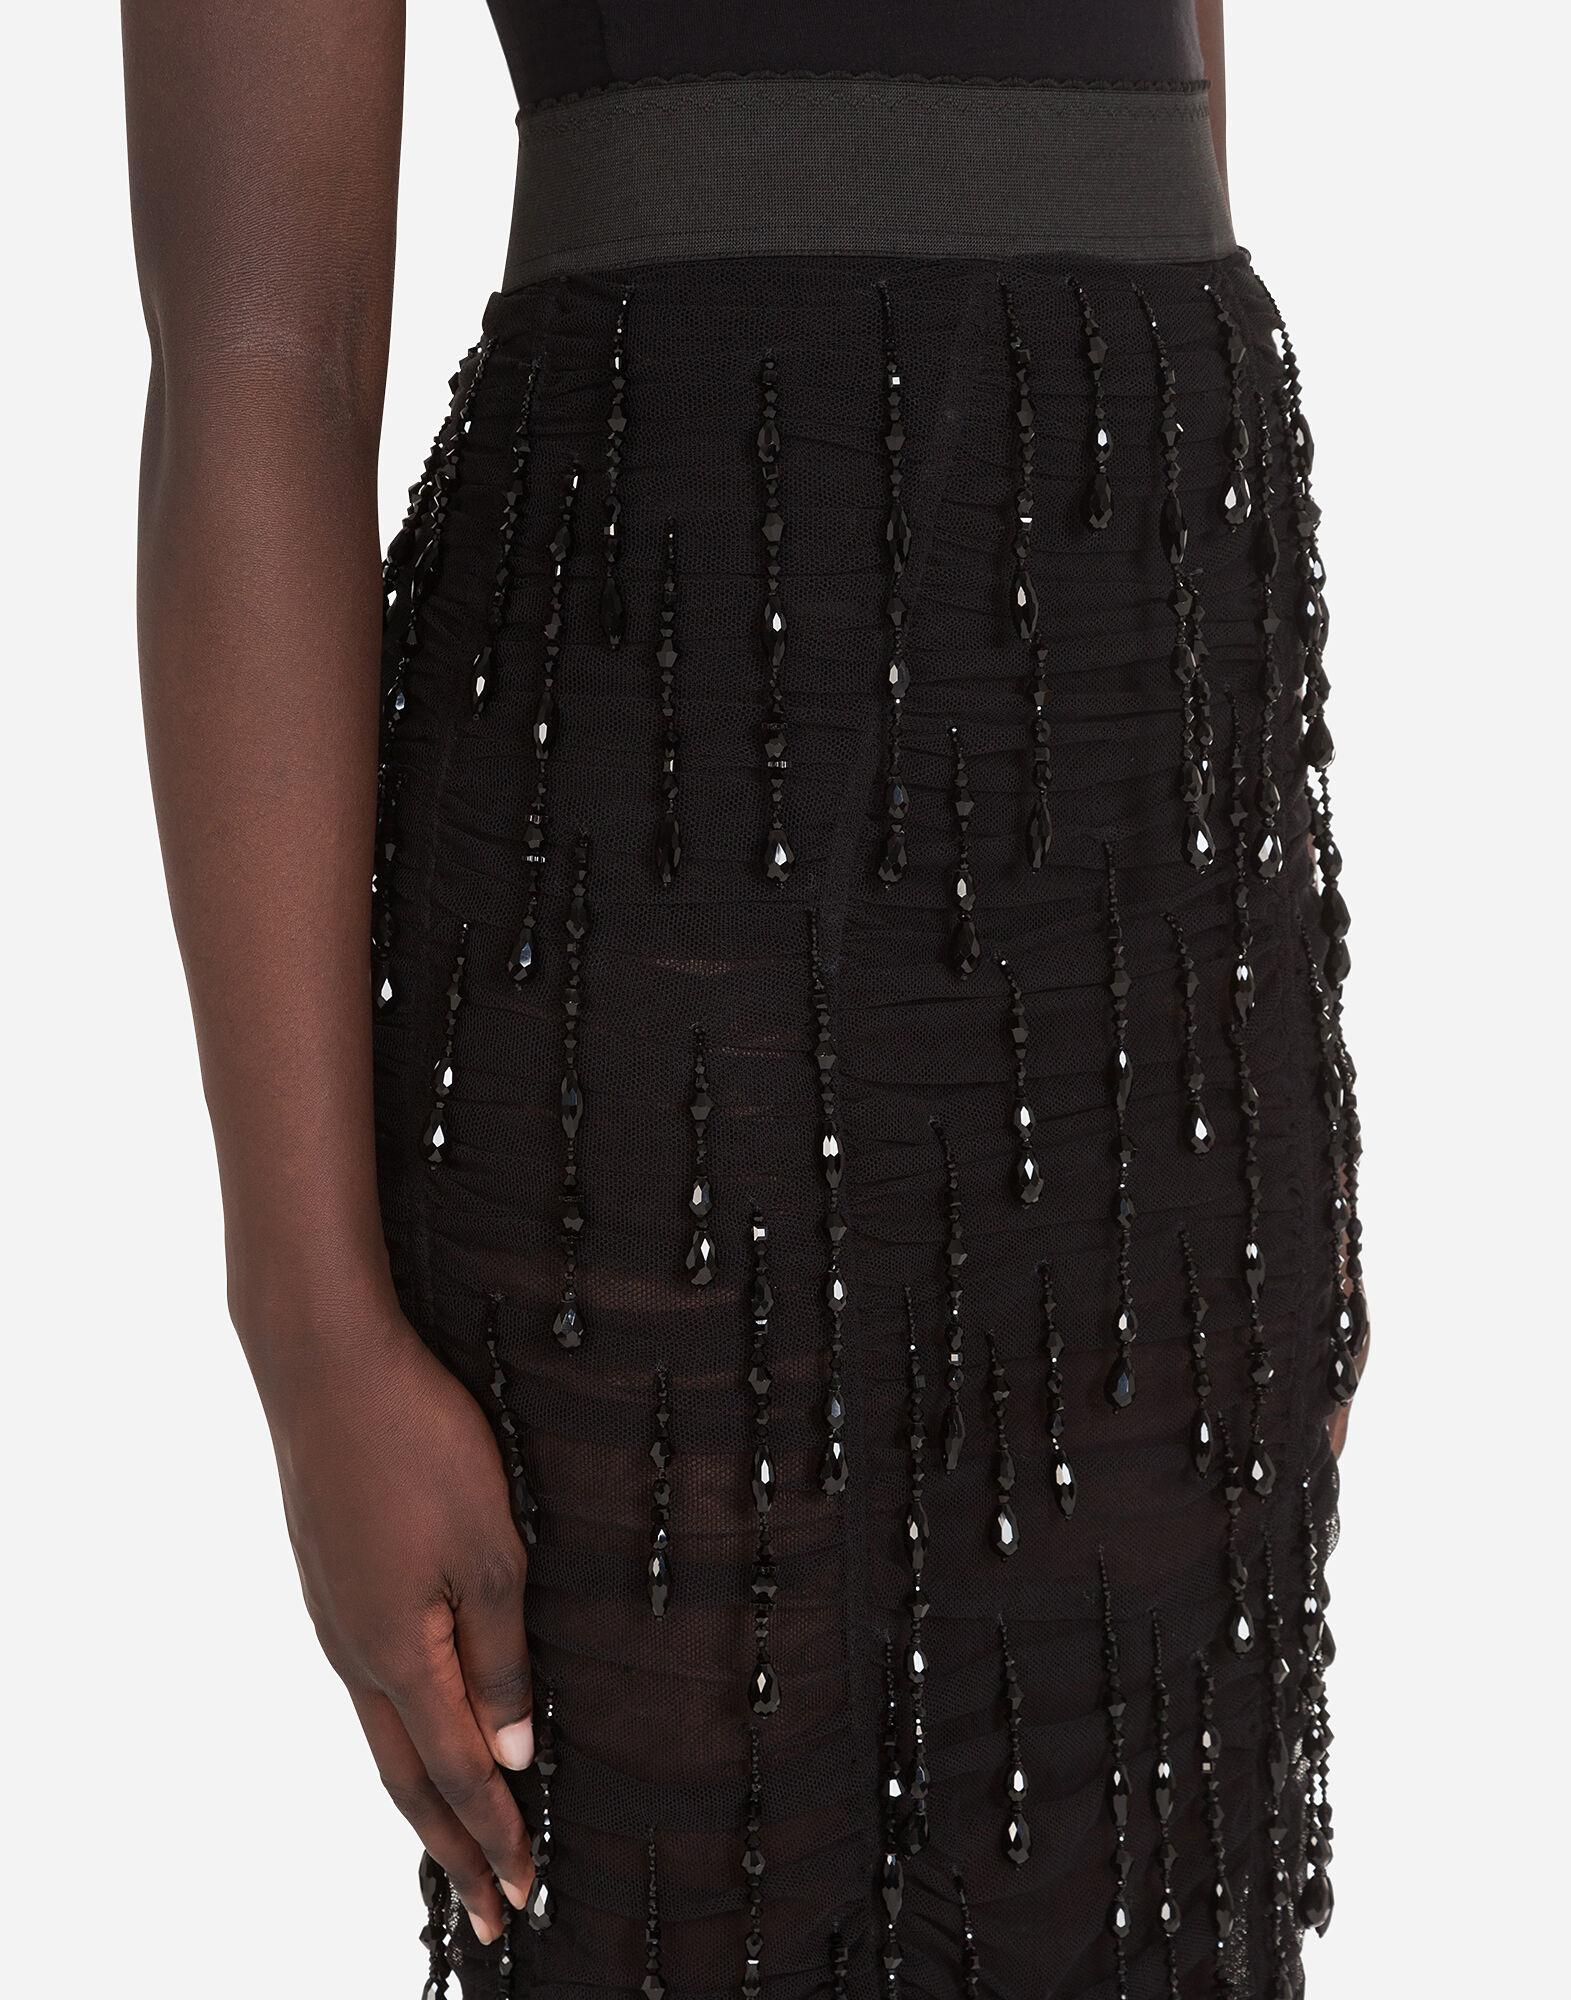 Embroidered pencil skirt 5